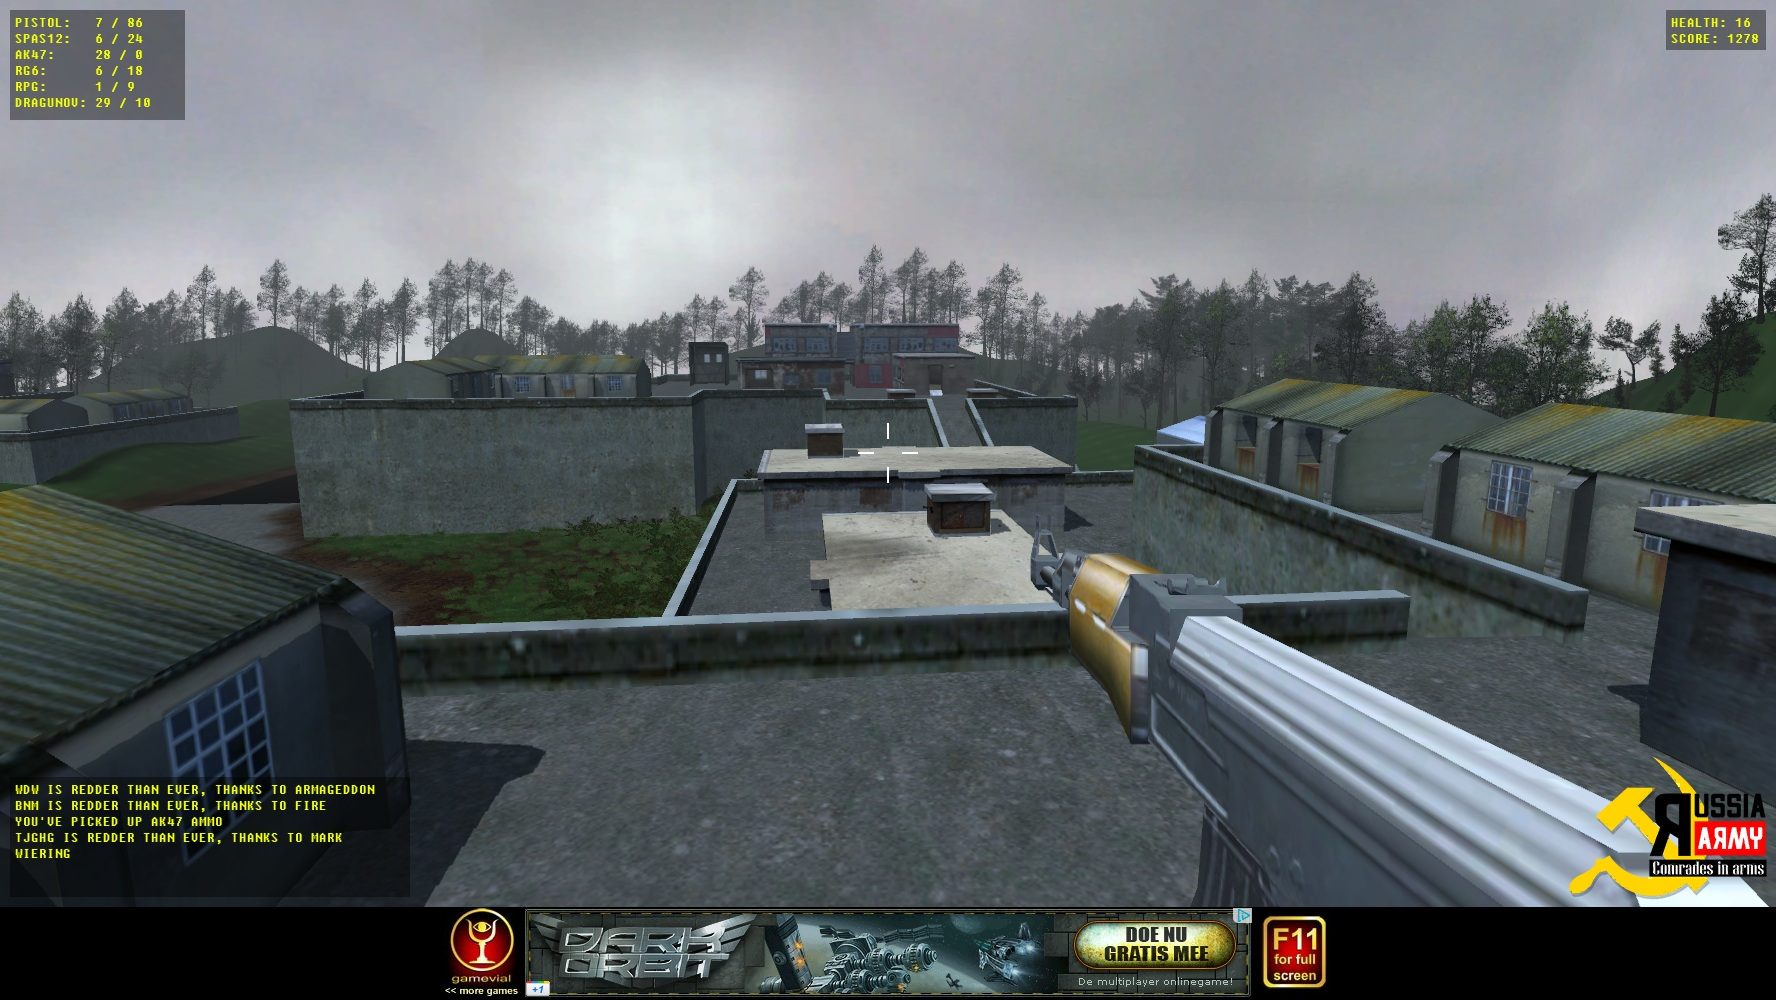 Russia s army next gen russias army next gen game browser mmo fps meet